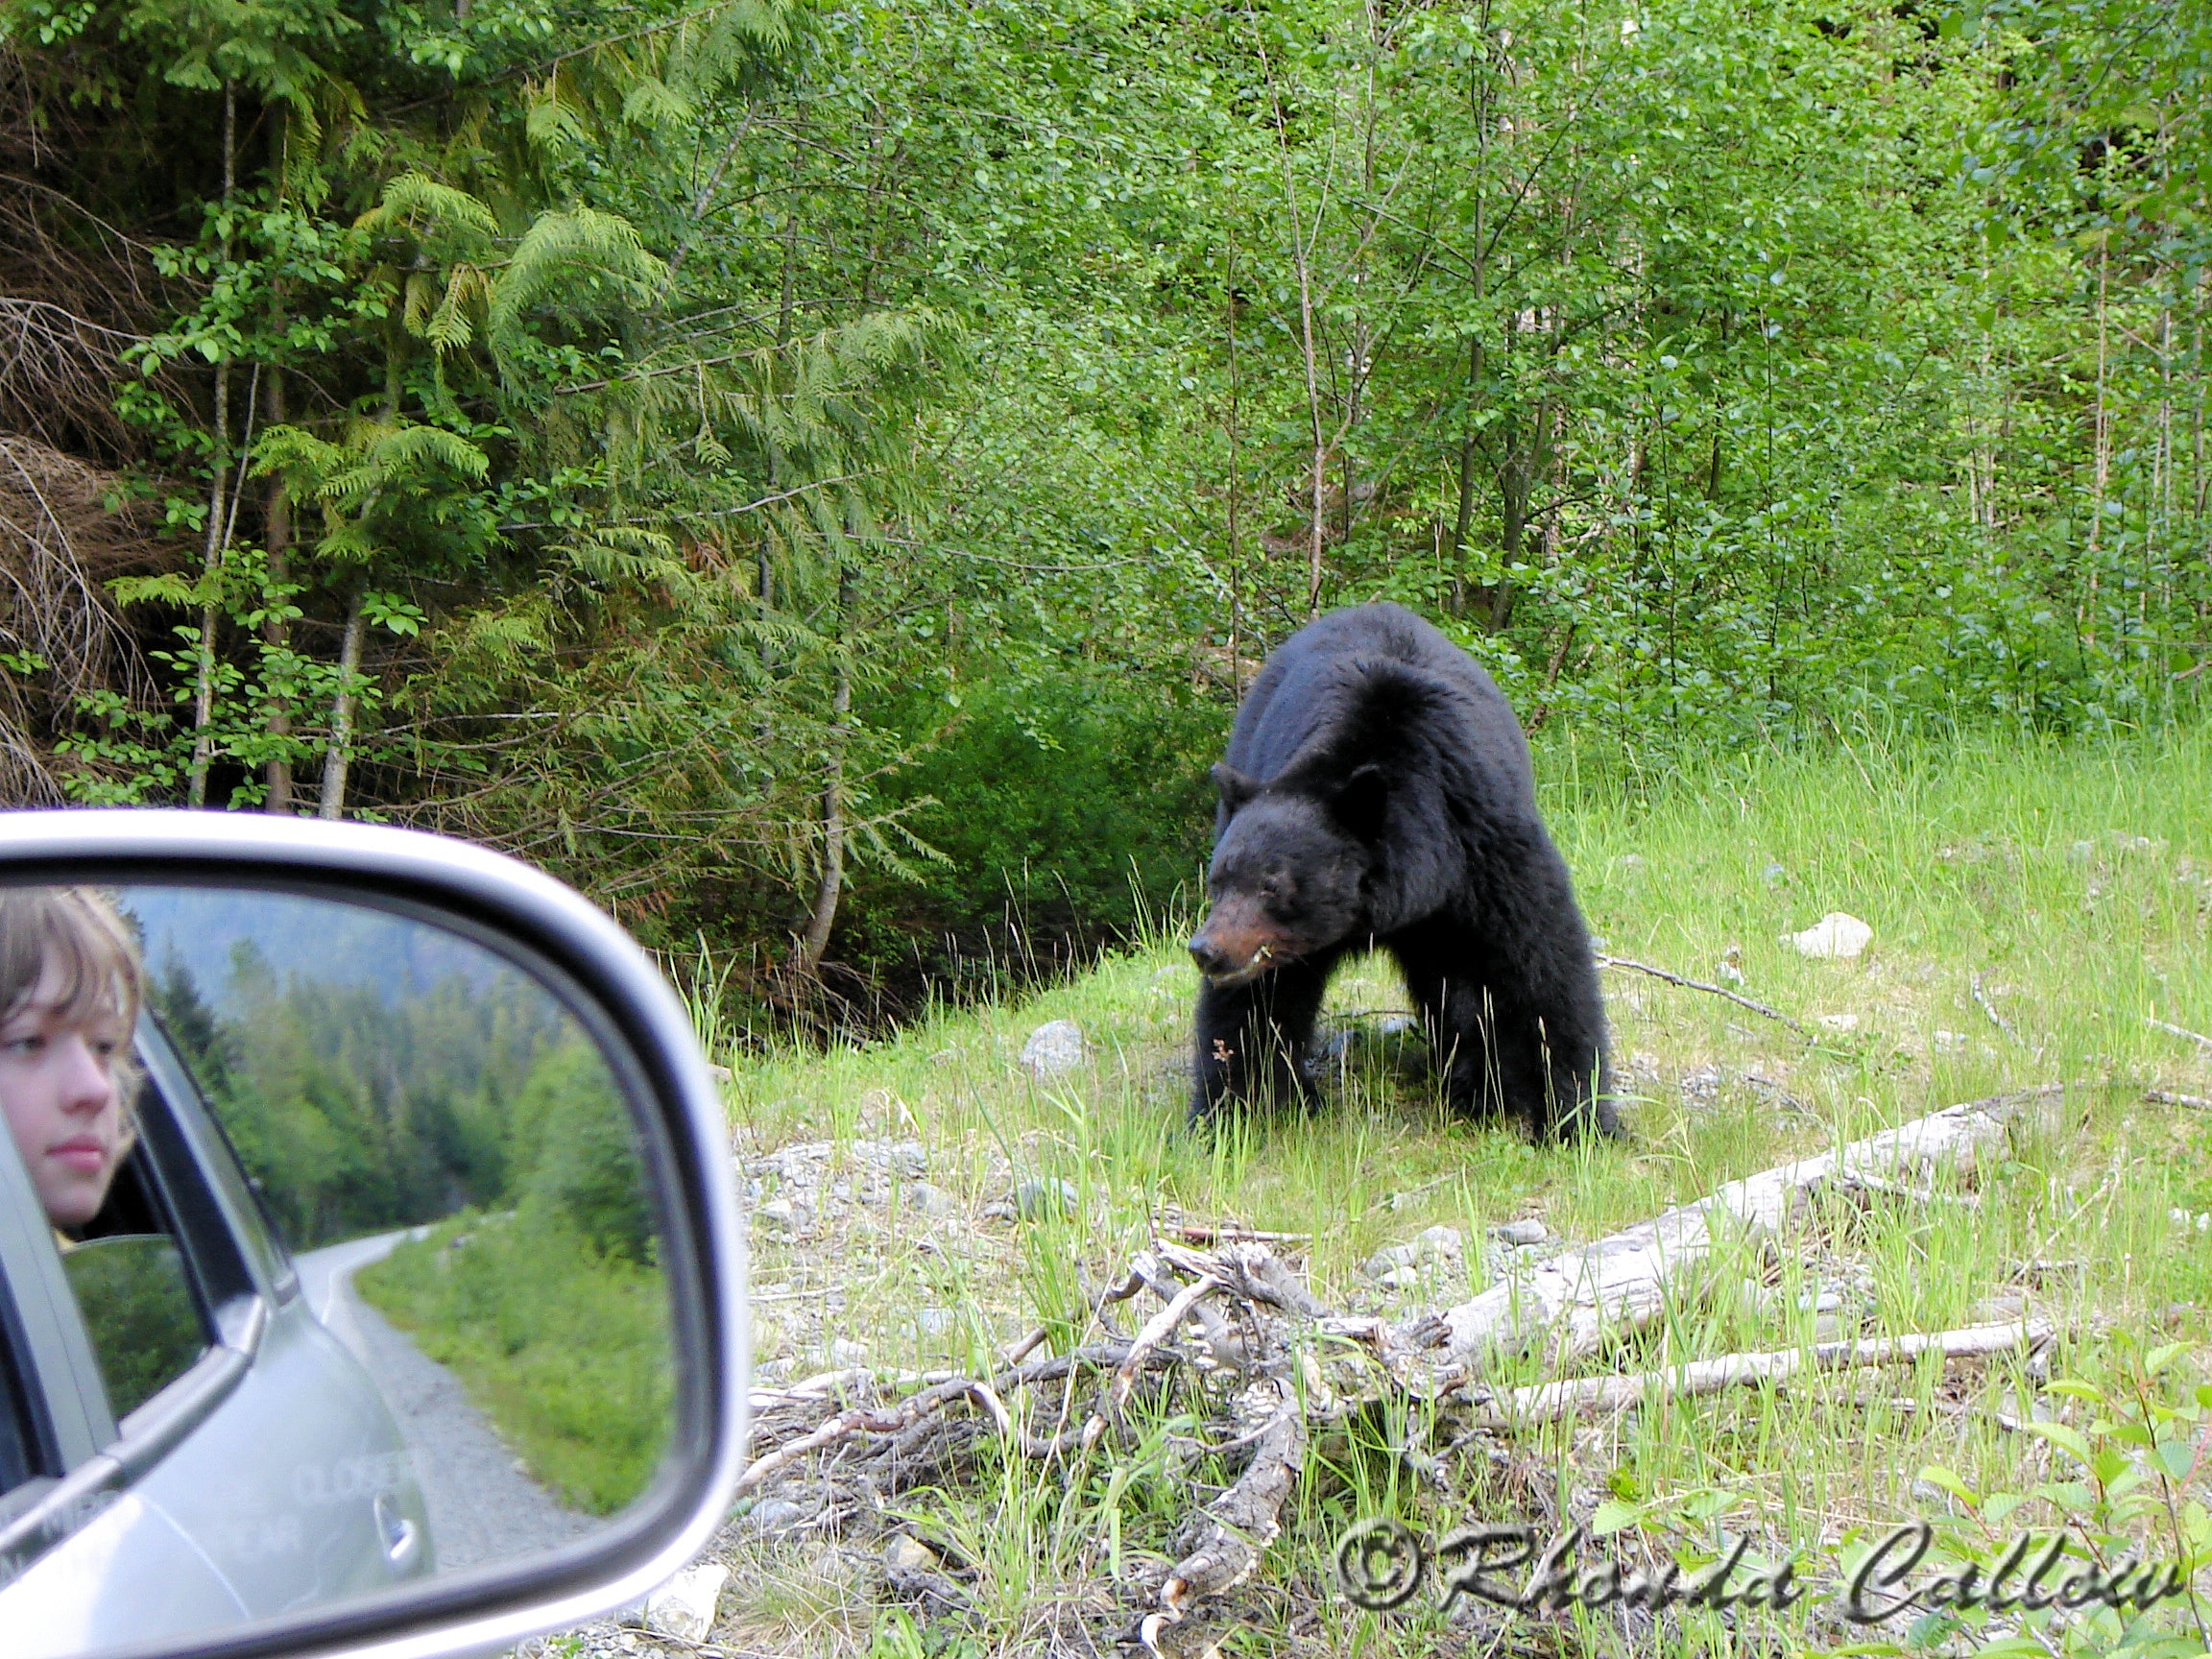 Boy looking at a black bear from the safety of the vehicle